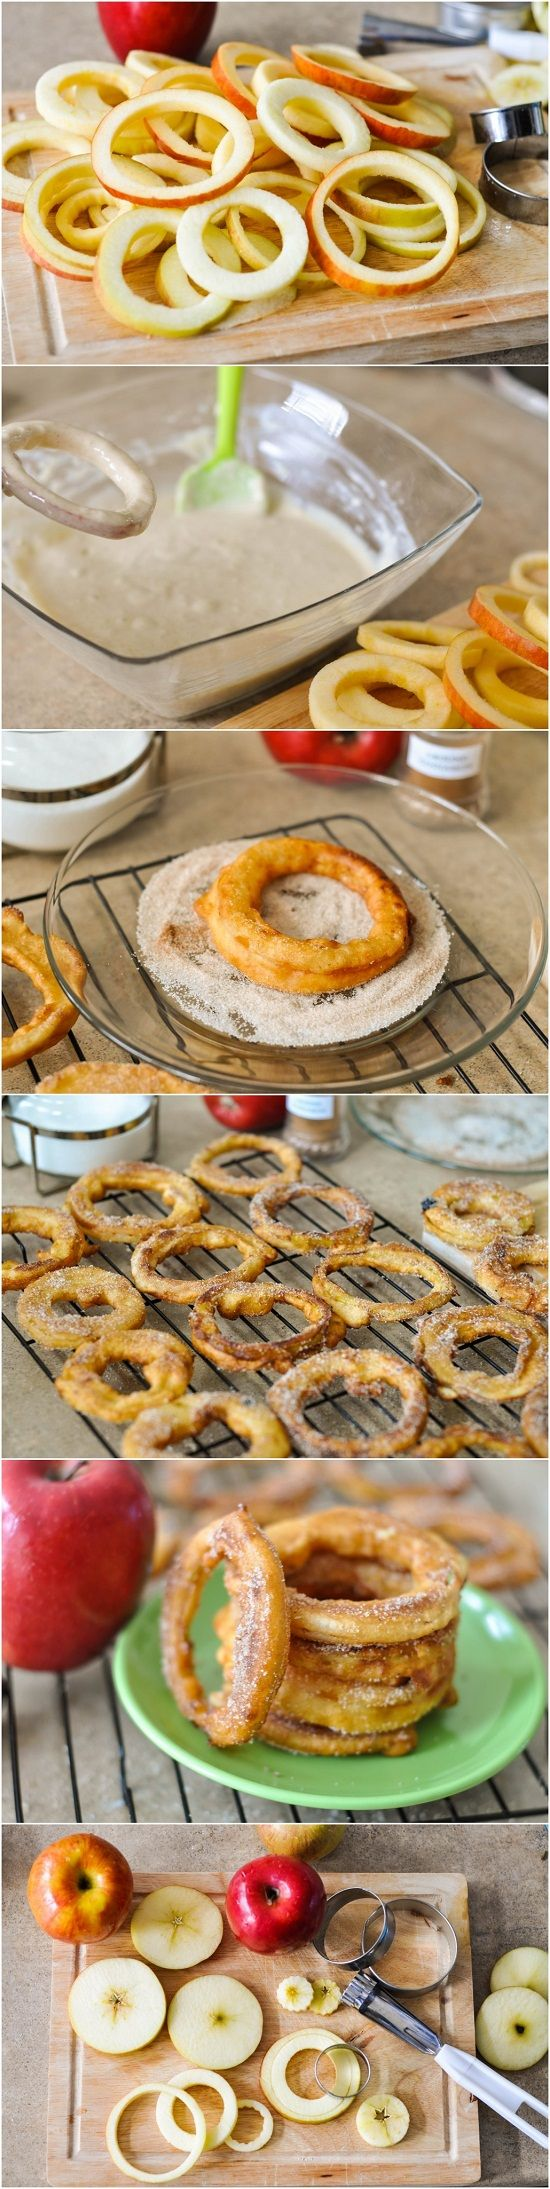 Aros de manzana y canela  -  Apple Cinnamon Rings